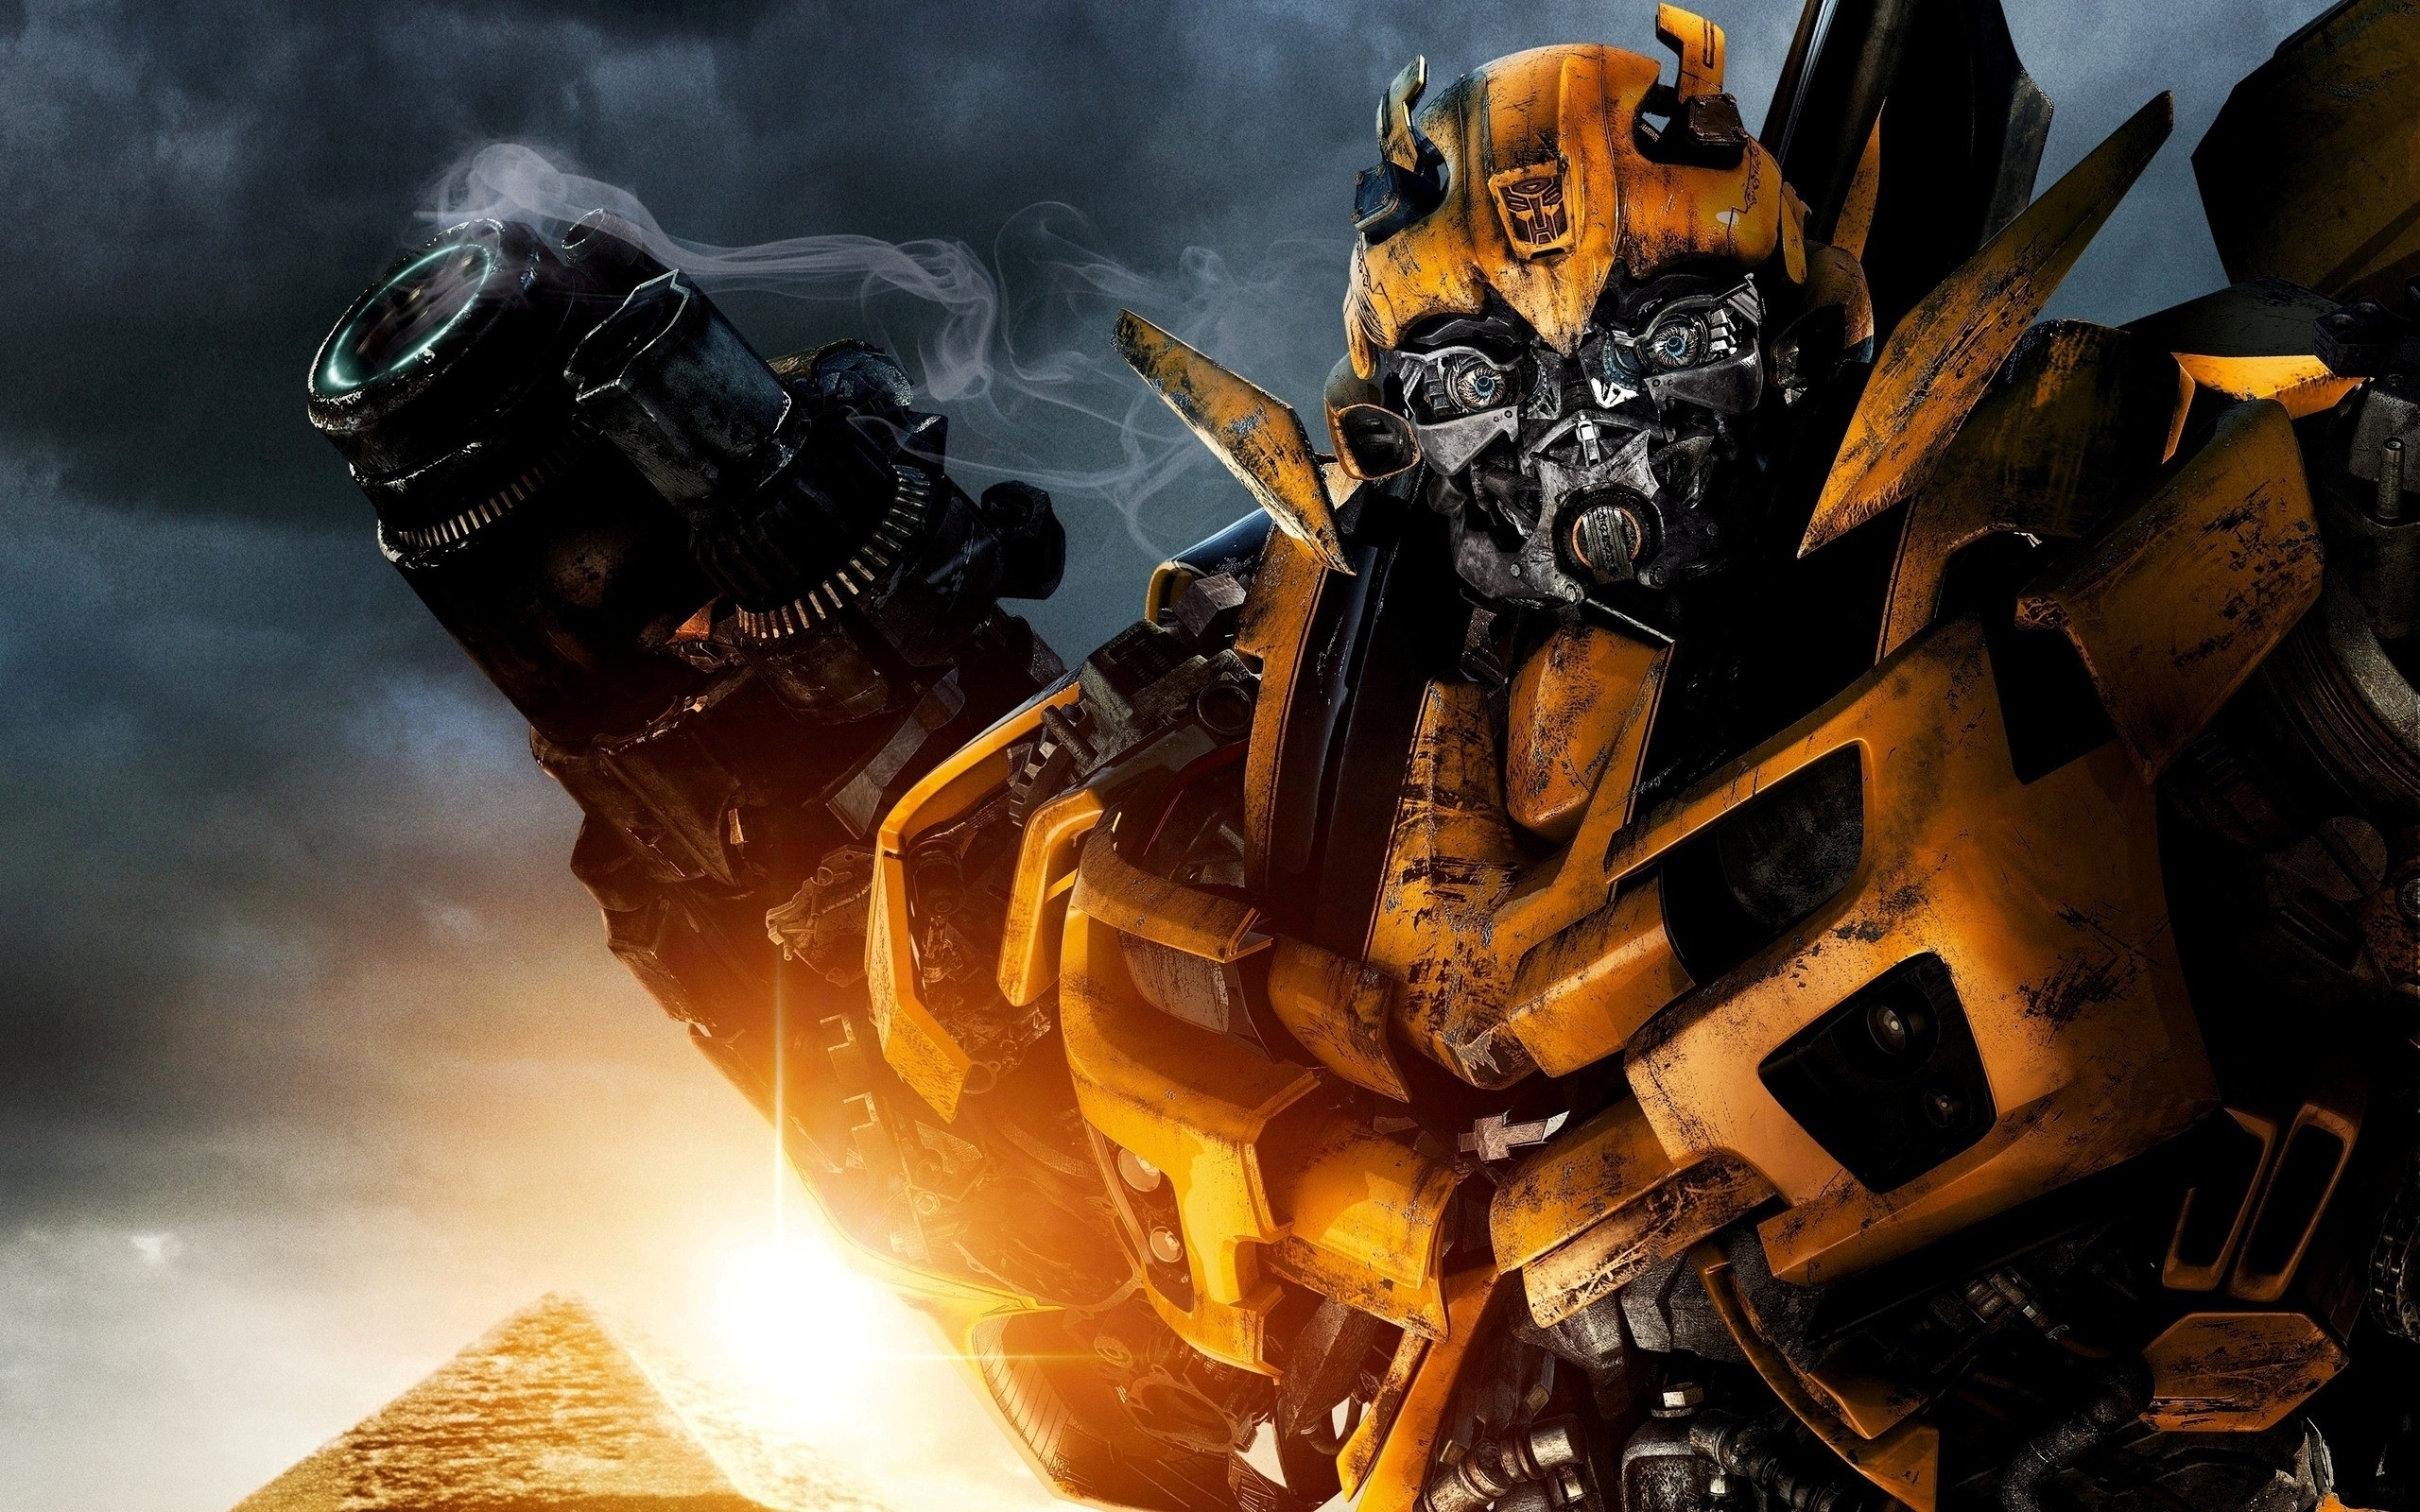 HD Transformers Wallpapers amp Backgrounds For Download 2560x1600